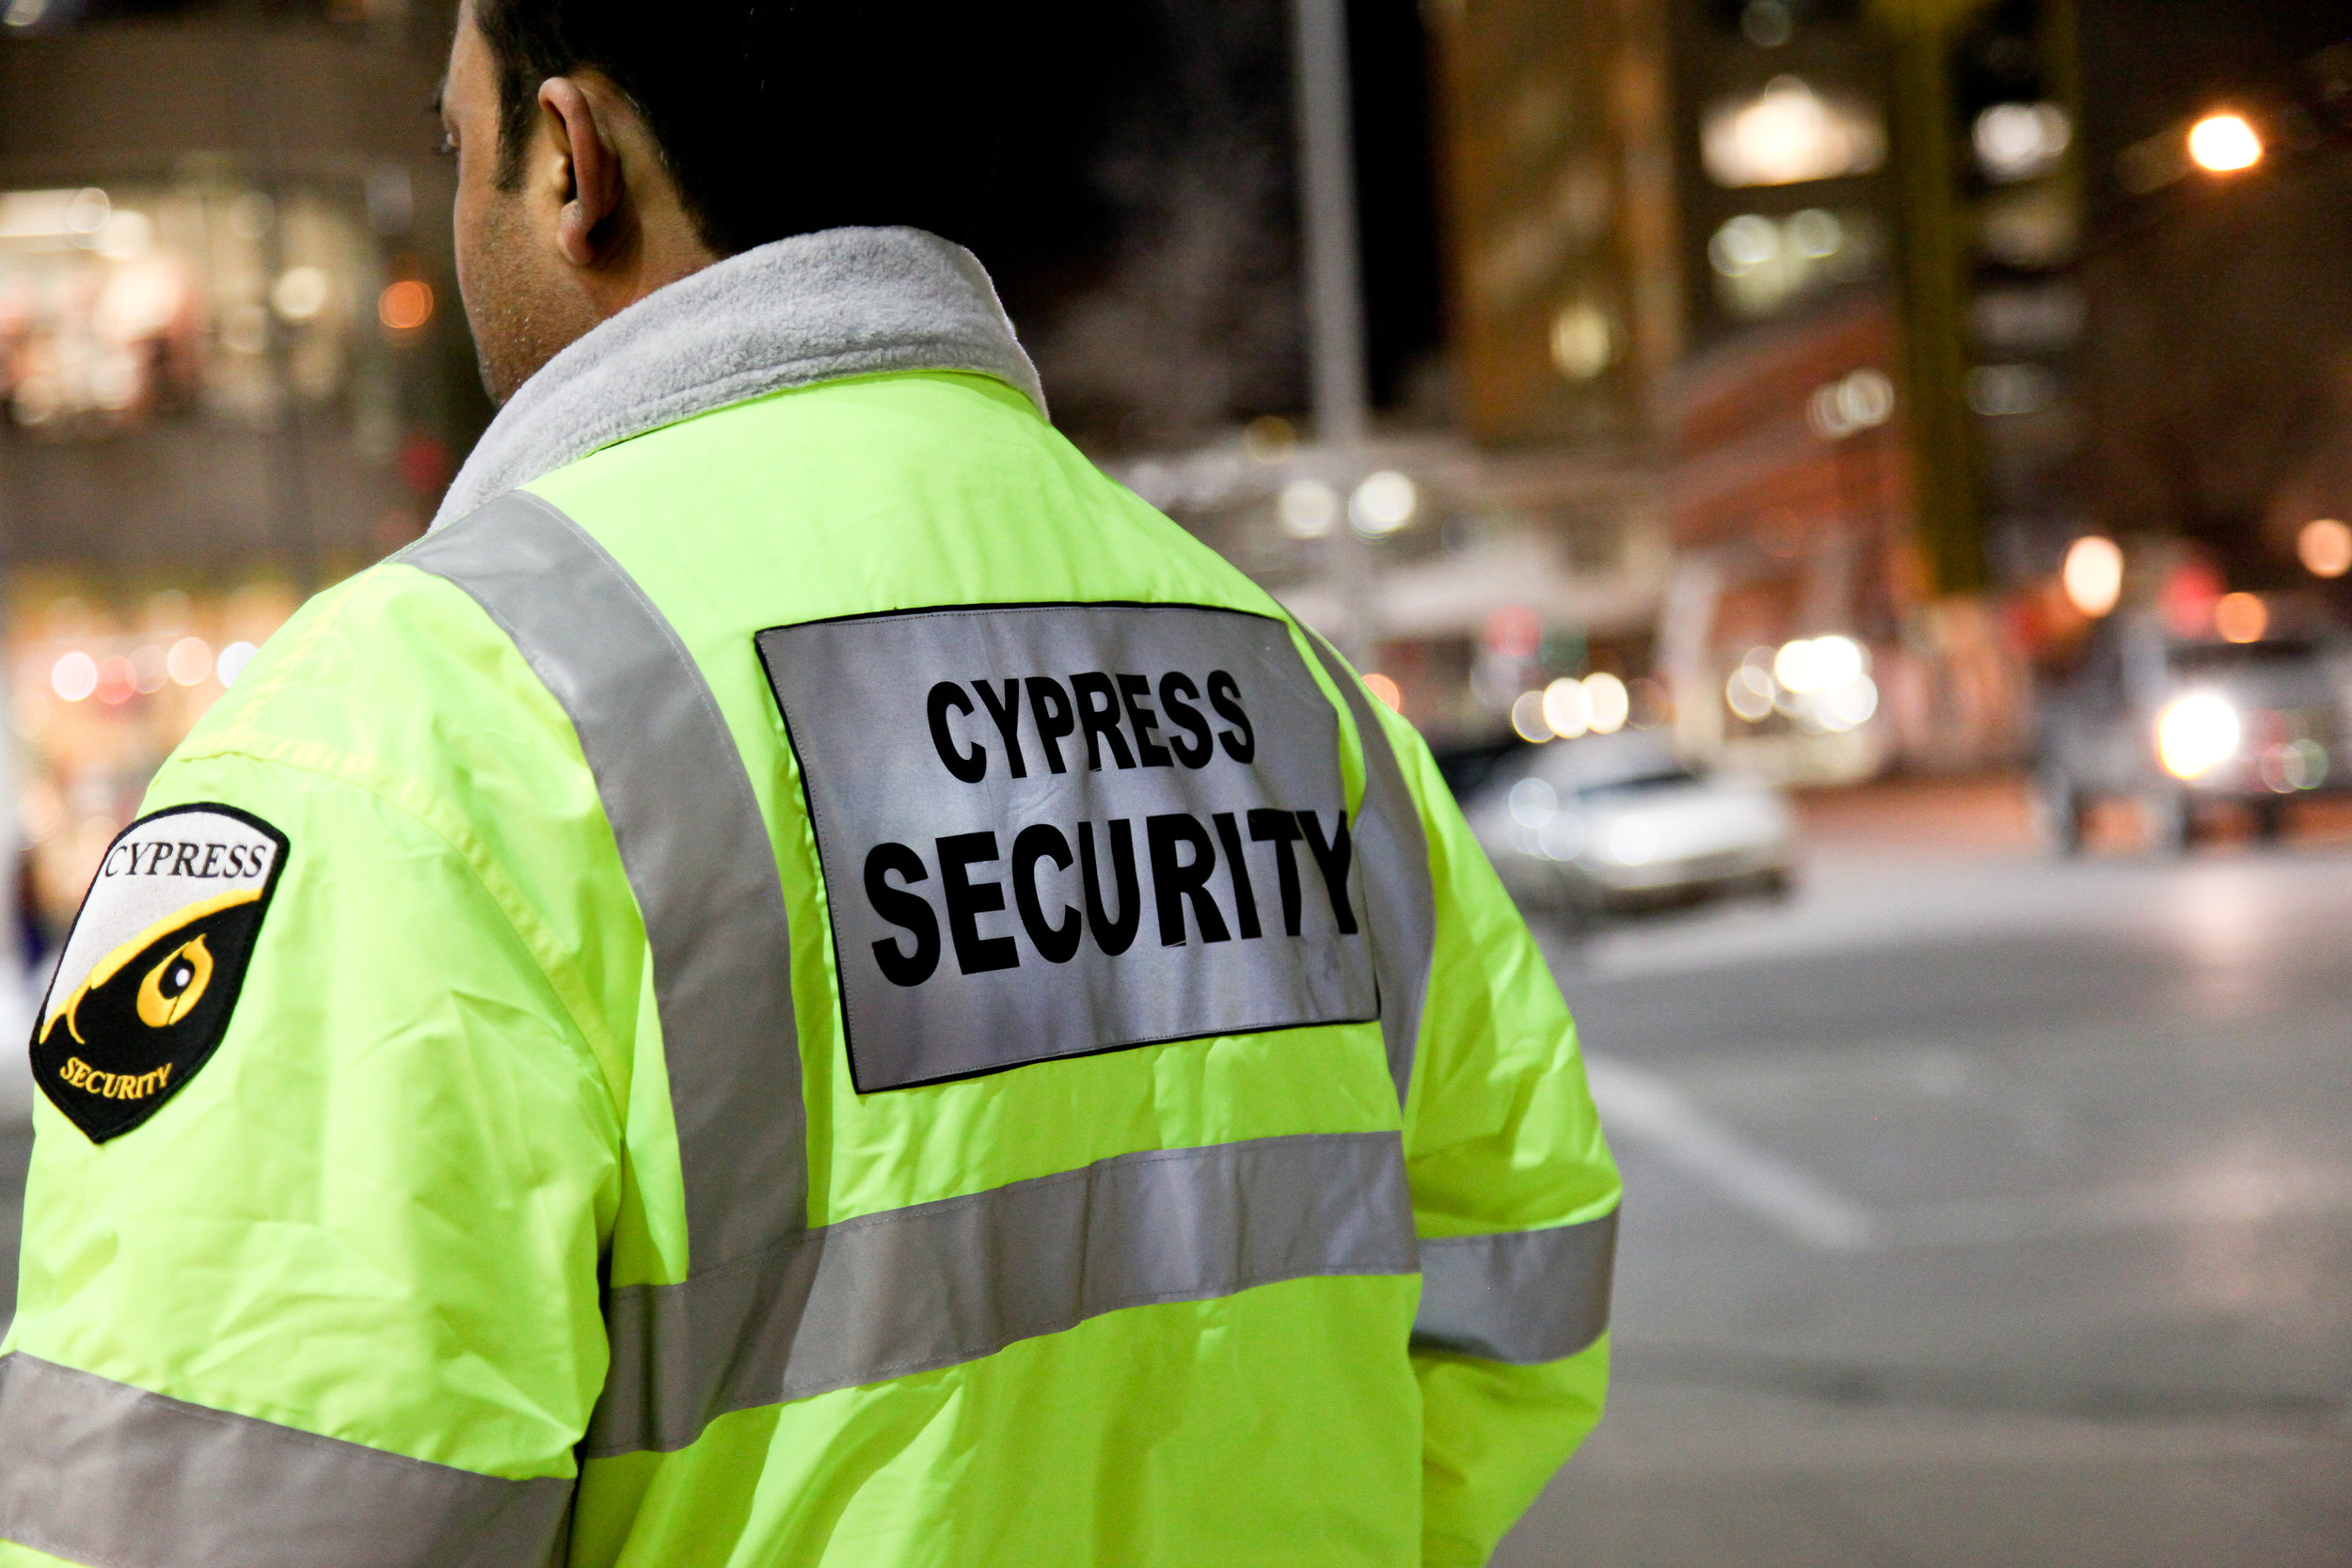 Cypress Security-18.jpg